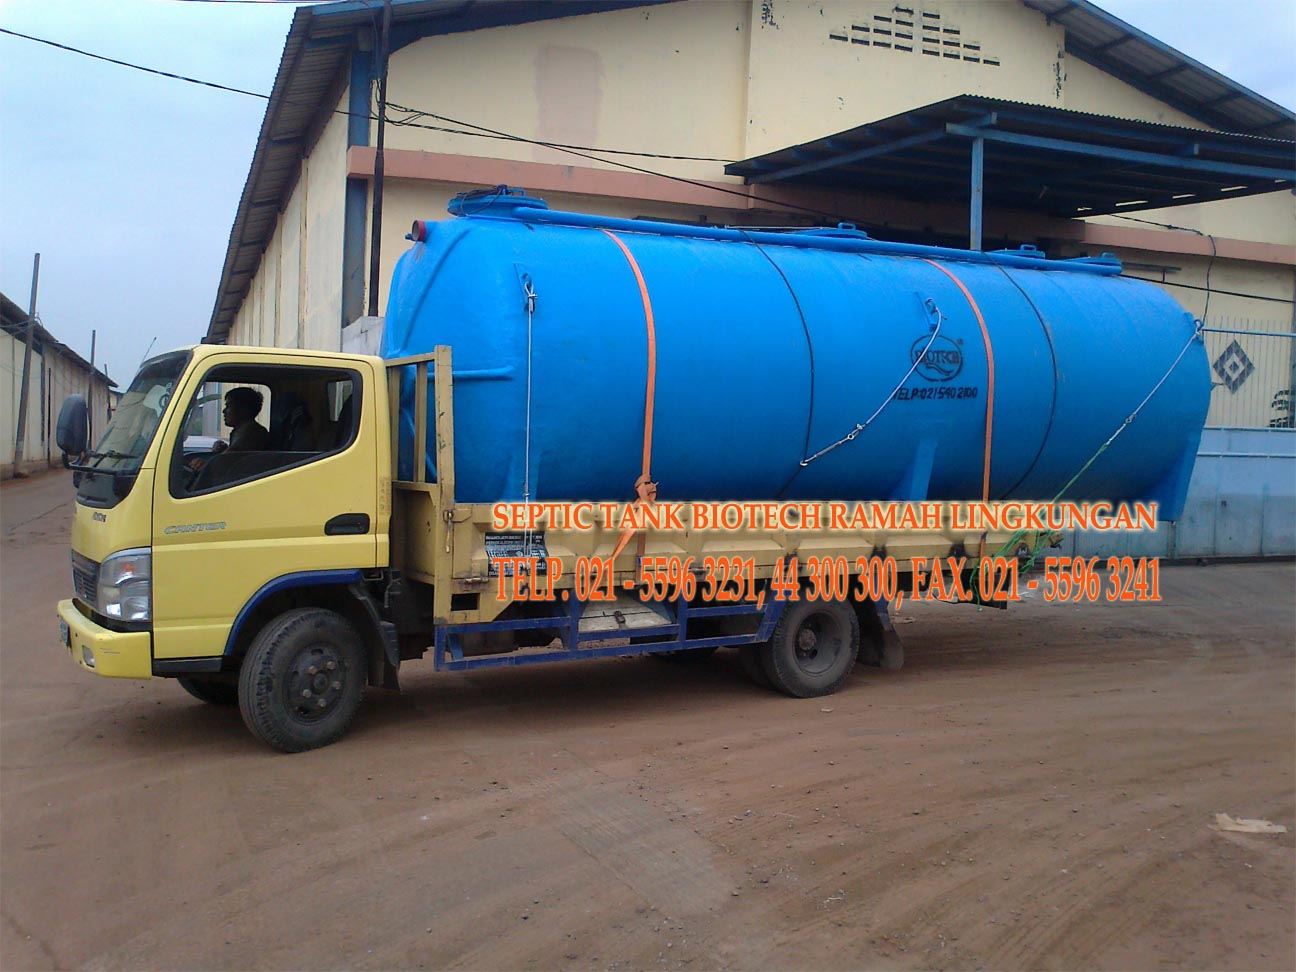 SEPTIC TANK BIOTECH, IPAL BIOTEK, BIOTECH INTERNATIONAL, GREASE TRAP, PORTABLE TOILET, ATAP FIBREGLASS